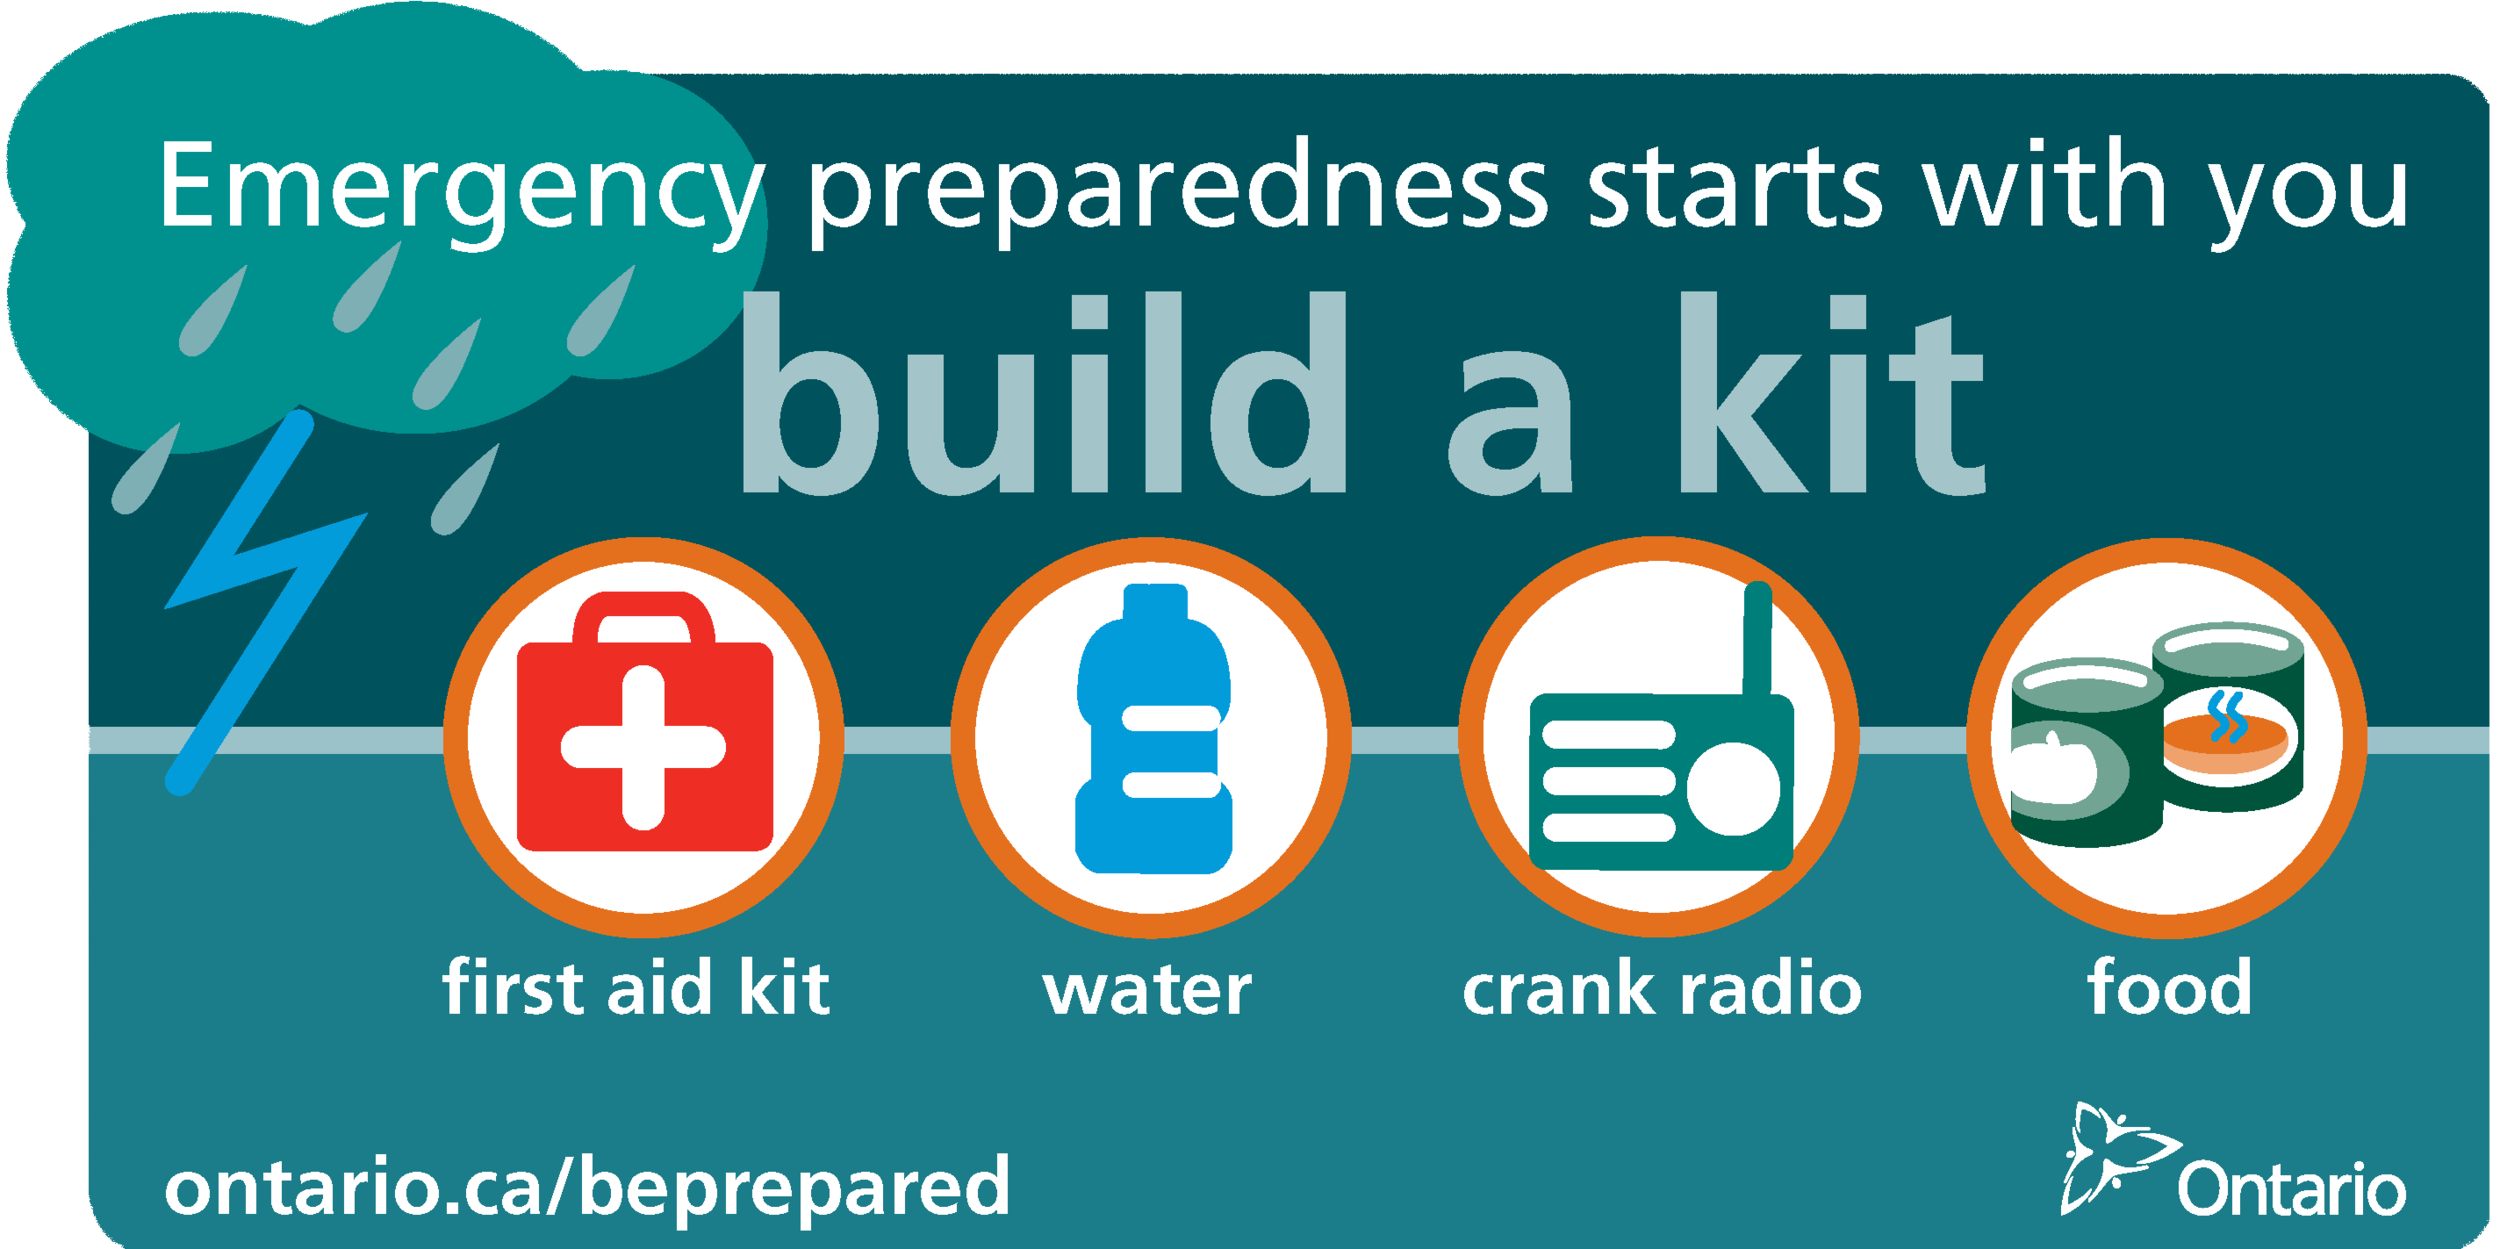 In the event of an emergency, are you ready? - May 5-11, 2019 is Emergency Preparedness Week.